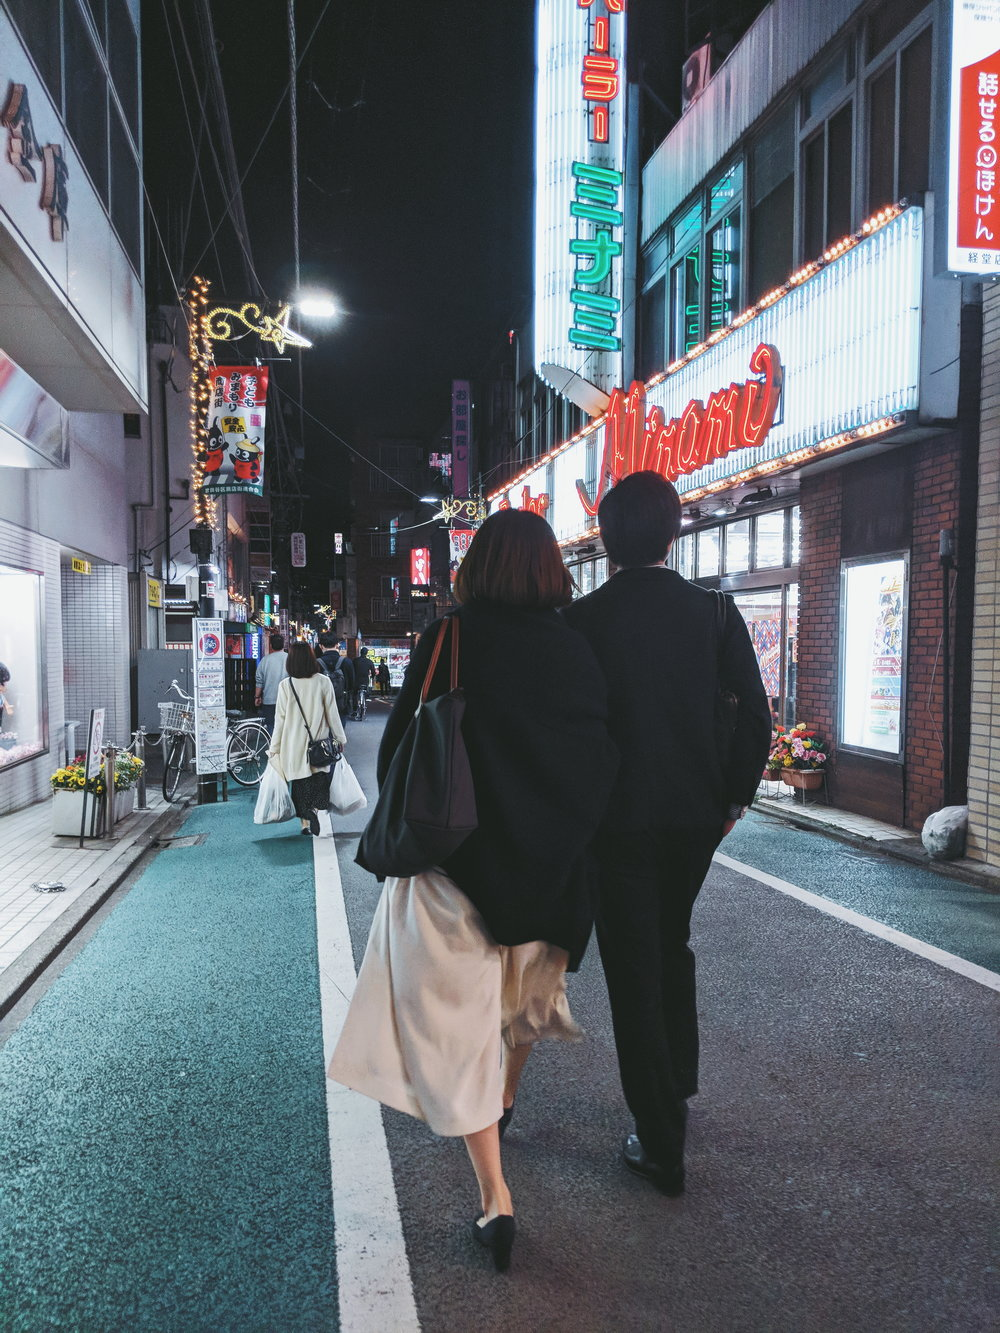 Late night 恋人(koibito) lovers in Kyodo, Pixel 2